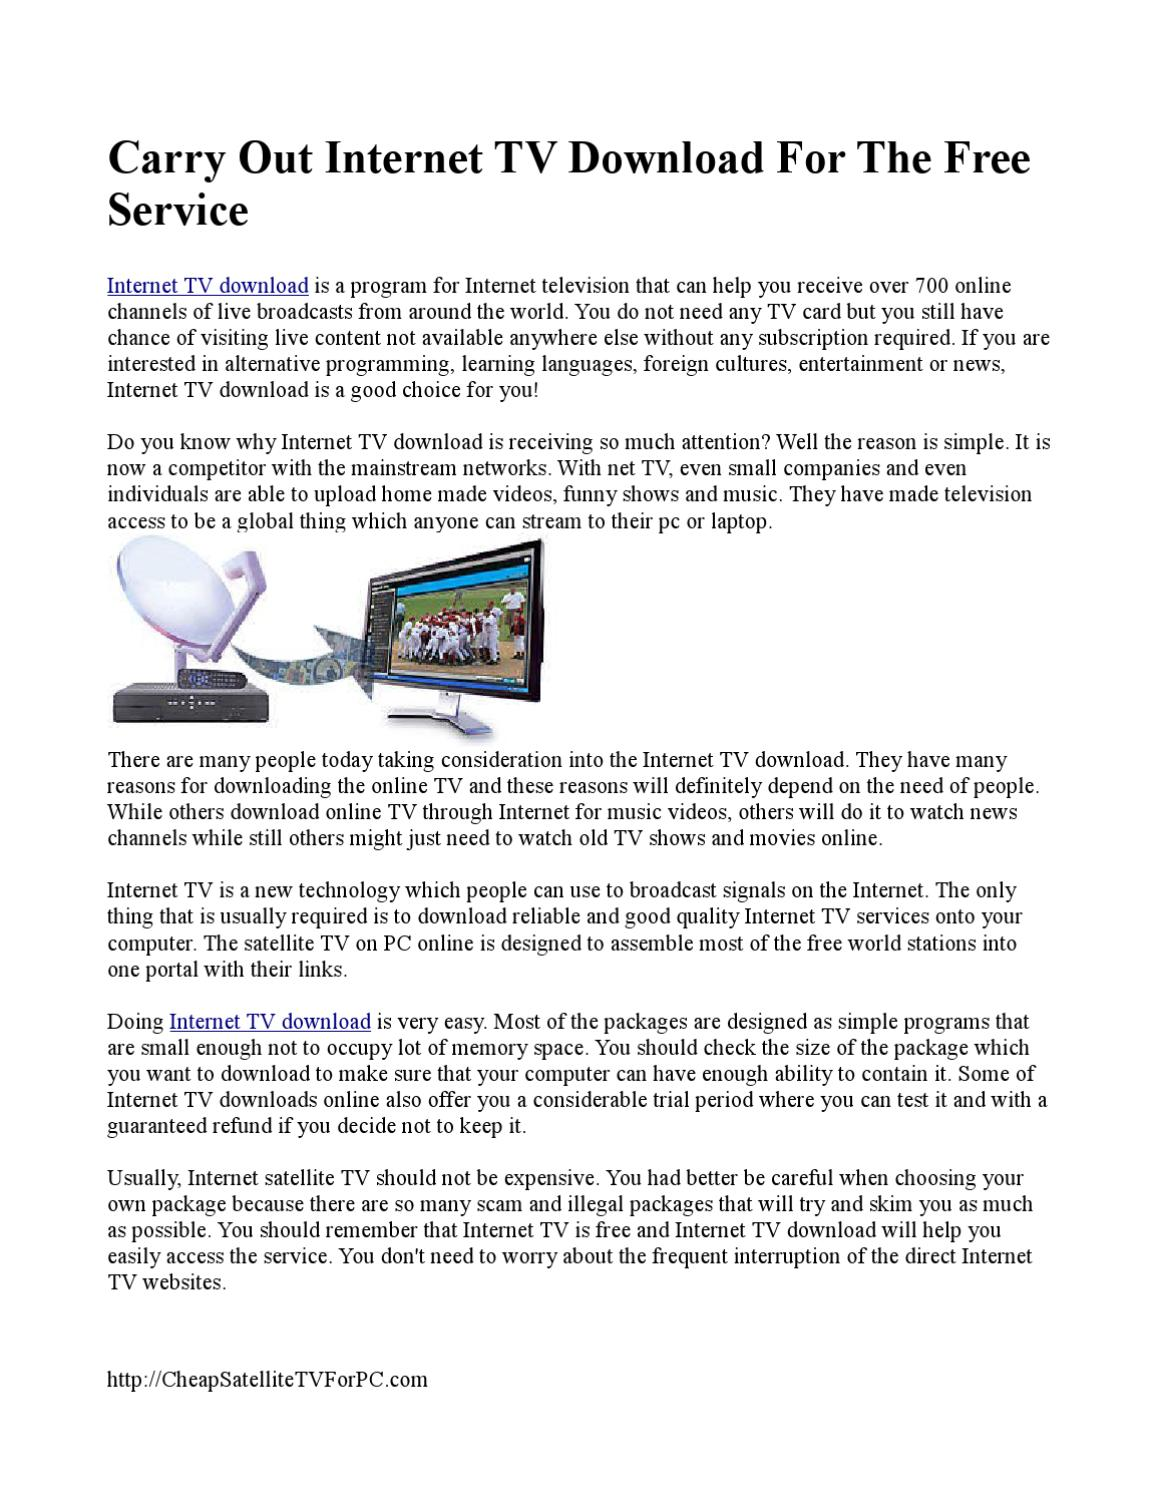 Carry Out Internet TV Download For The Free ServiceThis is a